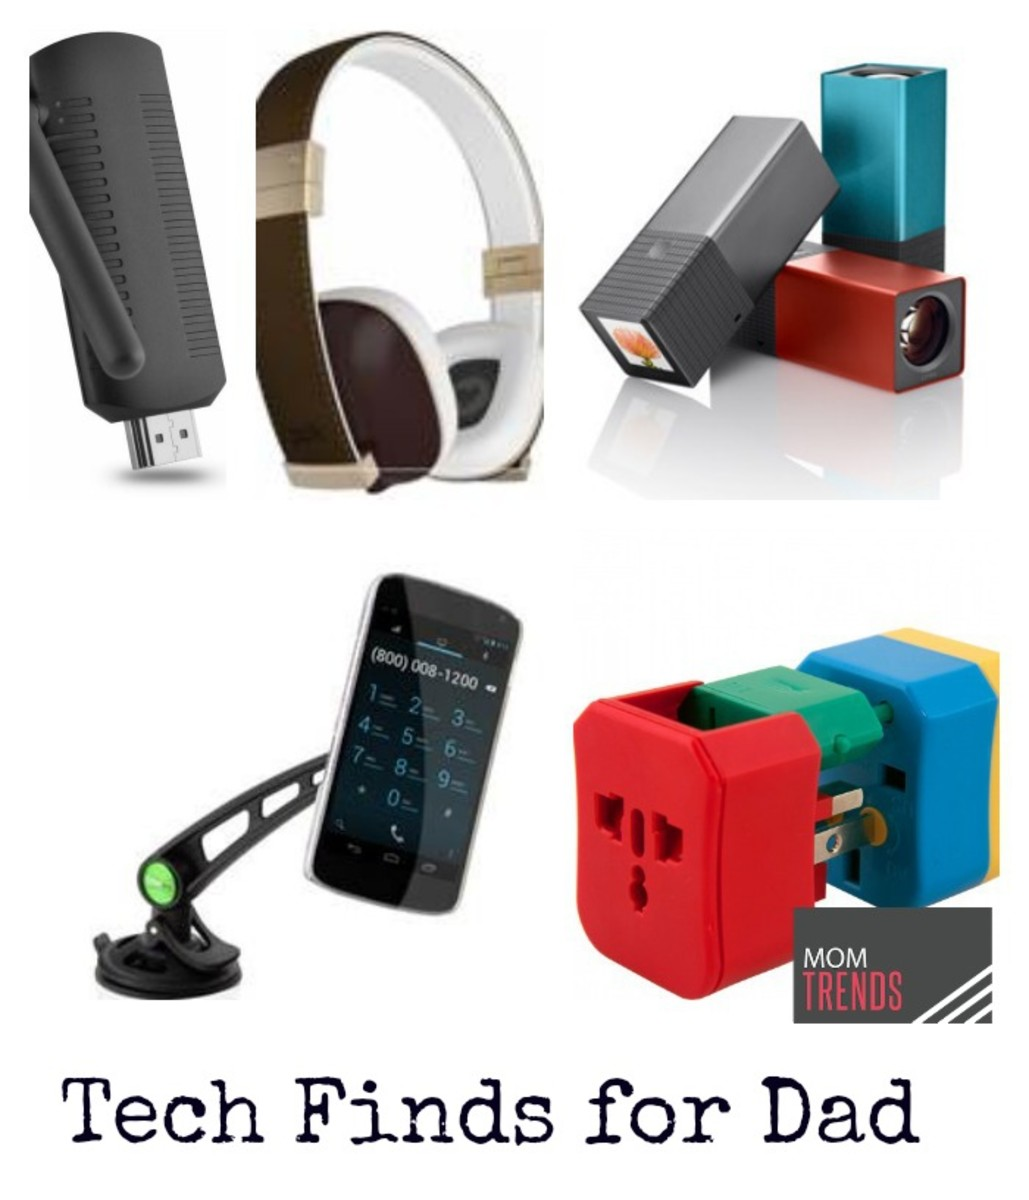 Tech finds for Dad